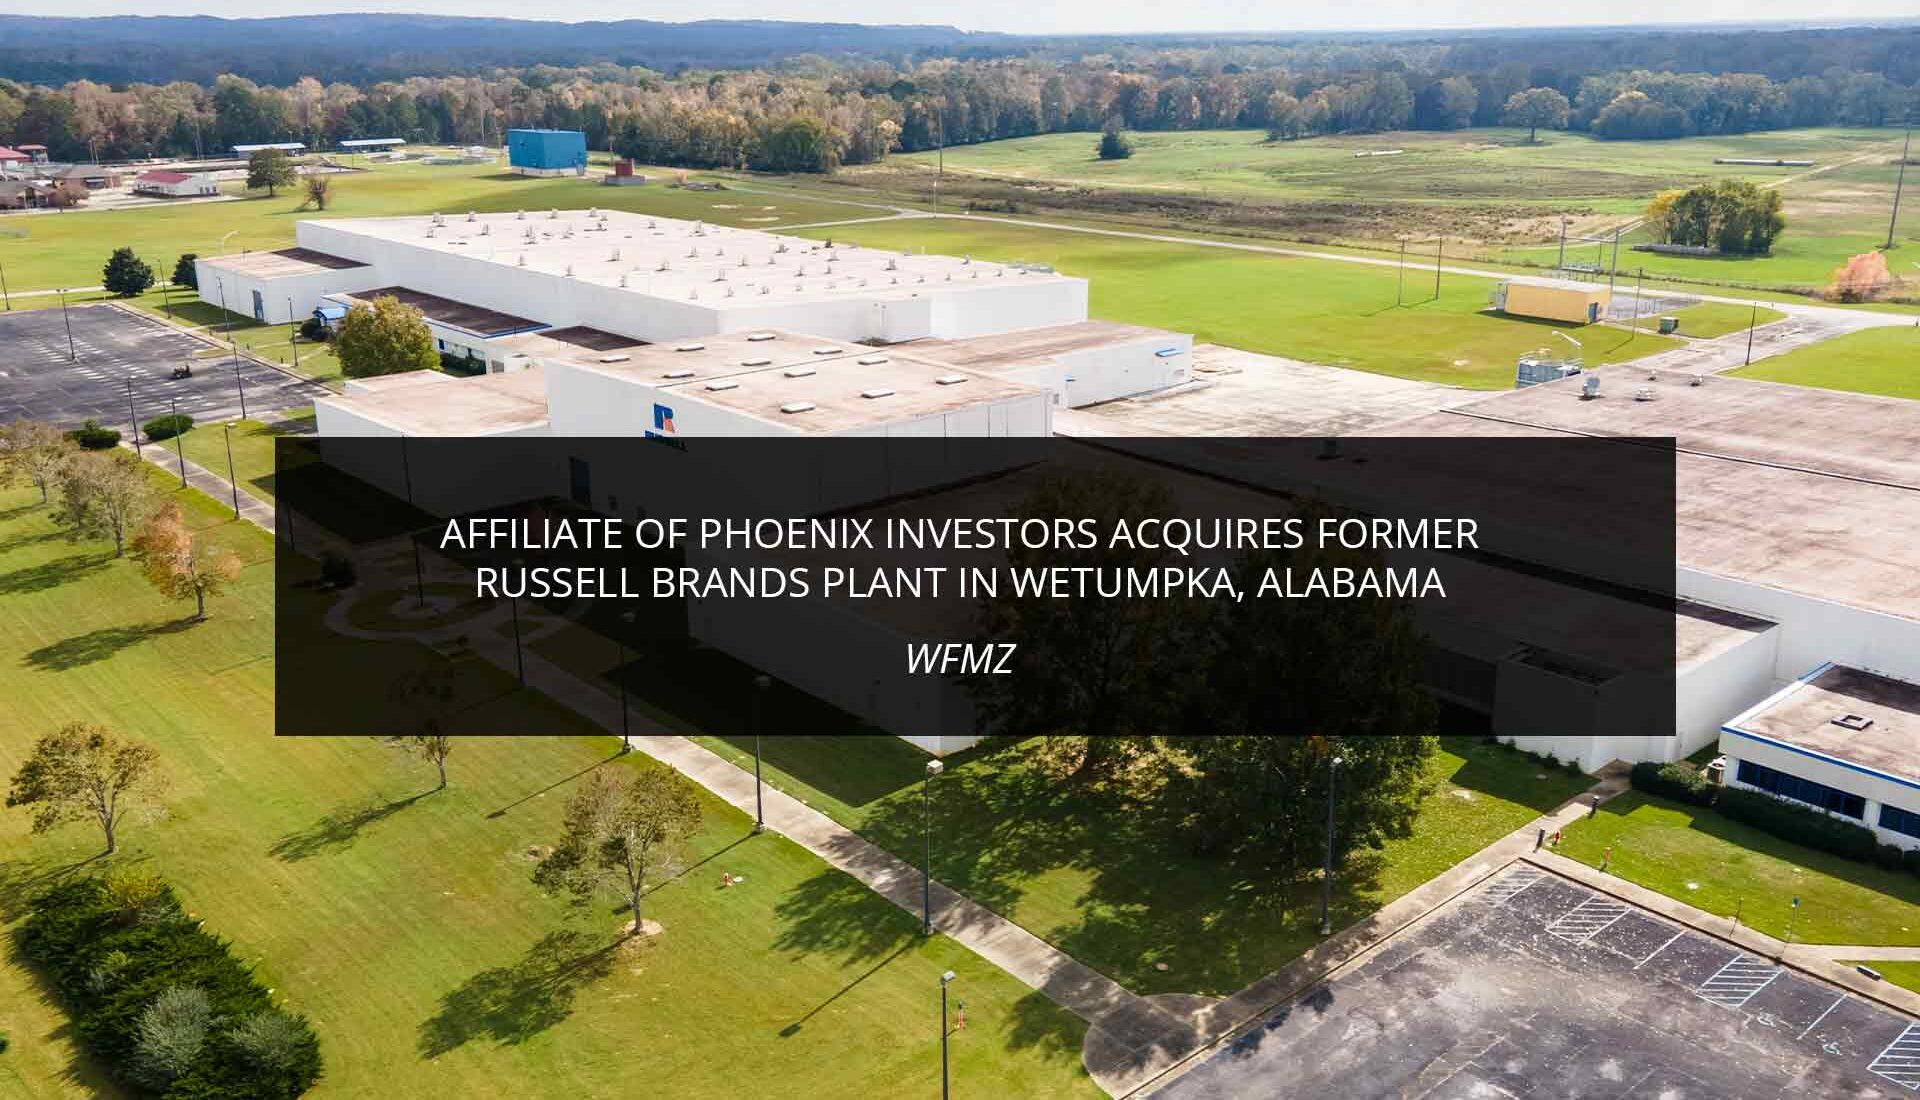 Affiliate of Phoenix Investors Acquires Former Russell Brands Plant in Wetumpka, Alabama